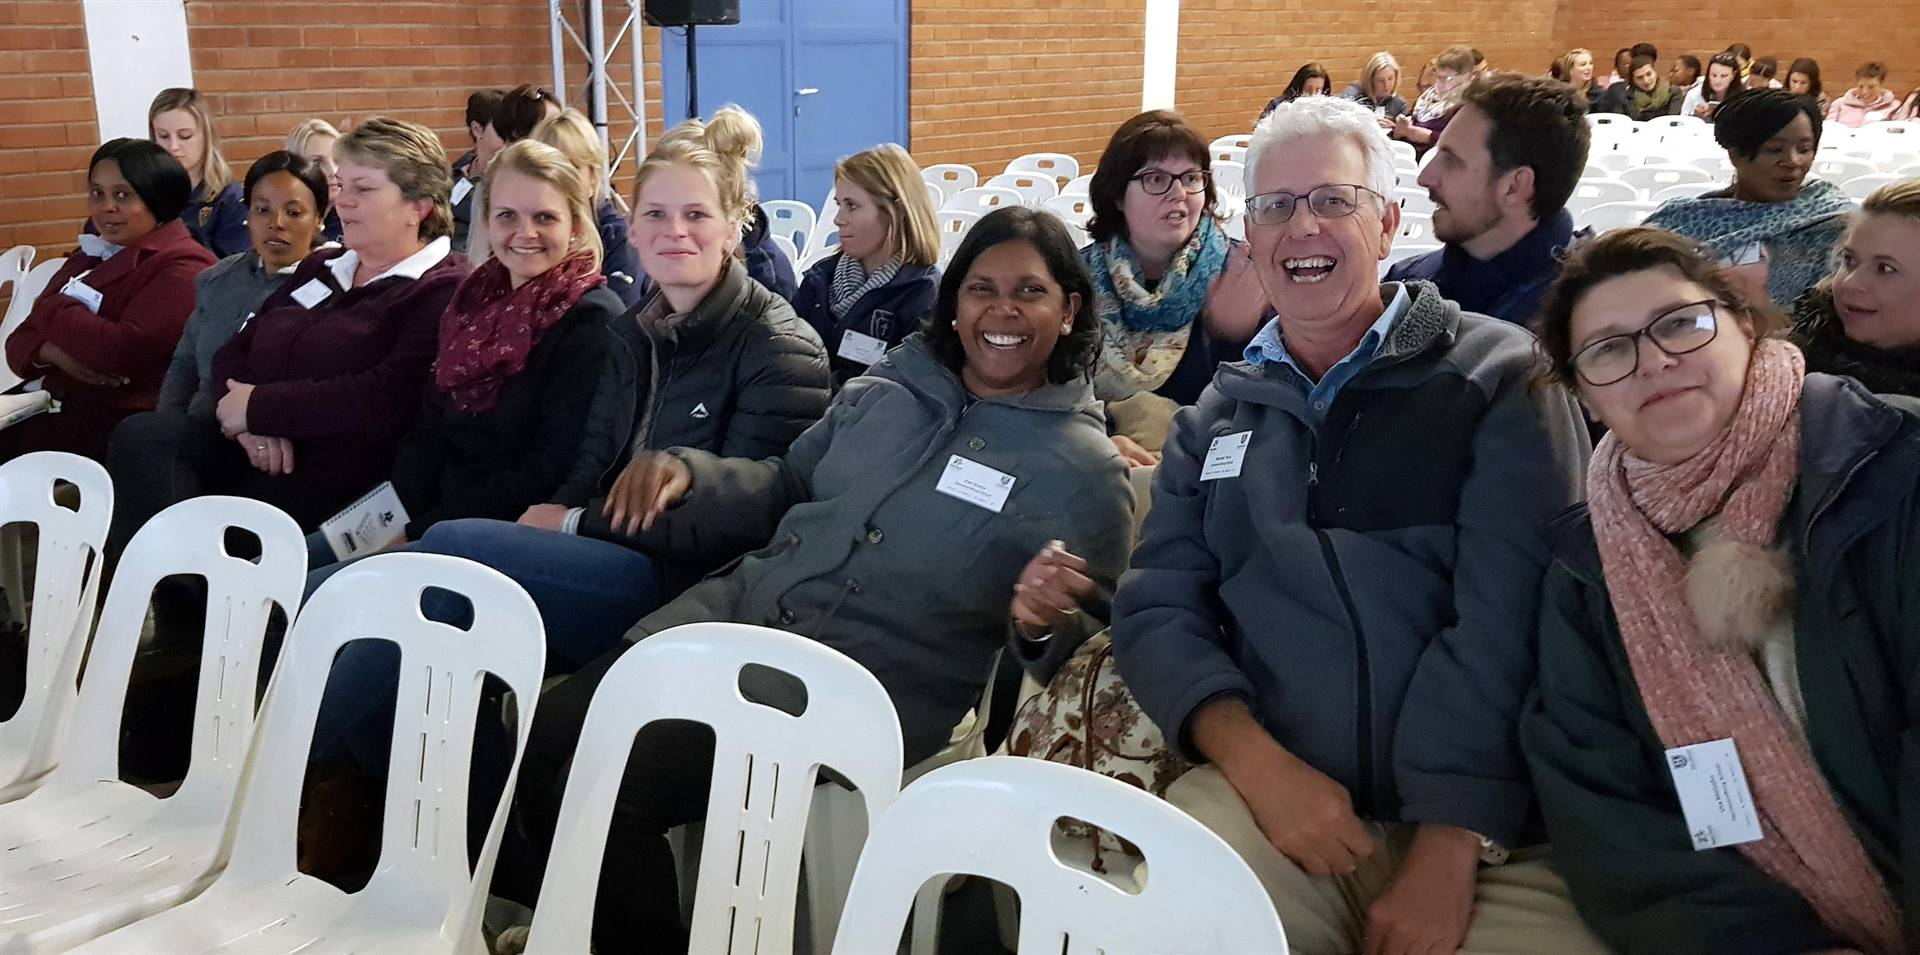 PHOTO: suppliedHermannsburg teachers (front, from left)Thembani Mzila, Ntokozo Zondi, Angelique van Rooyen, Monika Brüggemann, Ilse Ortmann, Pavini Chetty, Michael Terry and Uta Malzahn, led by Sonja Terry (who took the photo), 'reserved' their seats early at the recent Proudly Primary Conference.